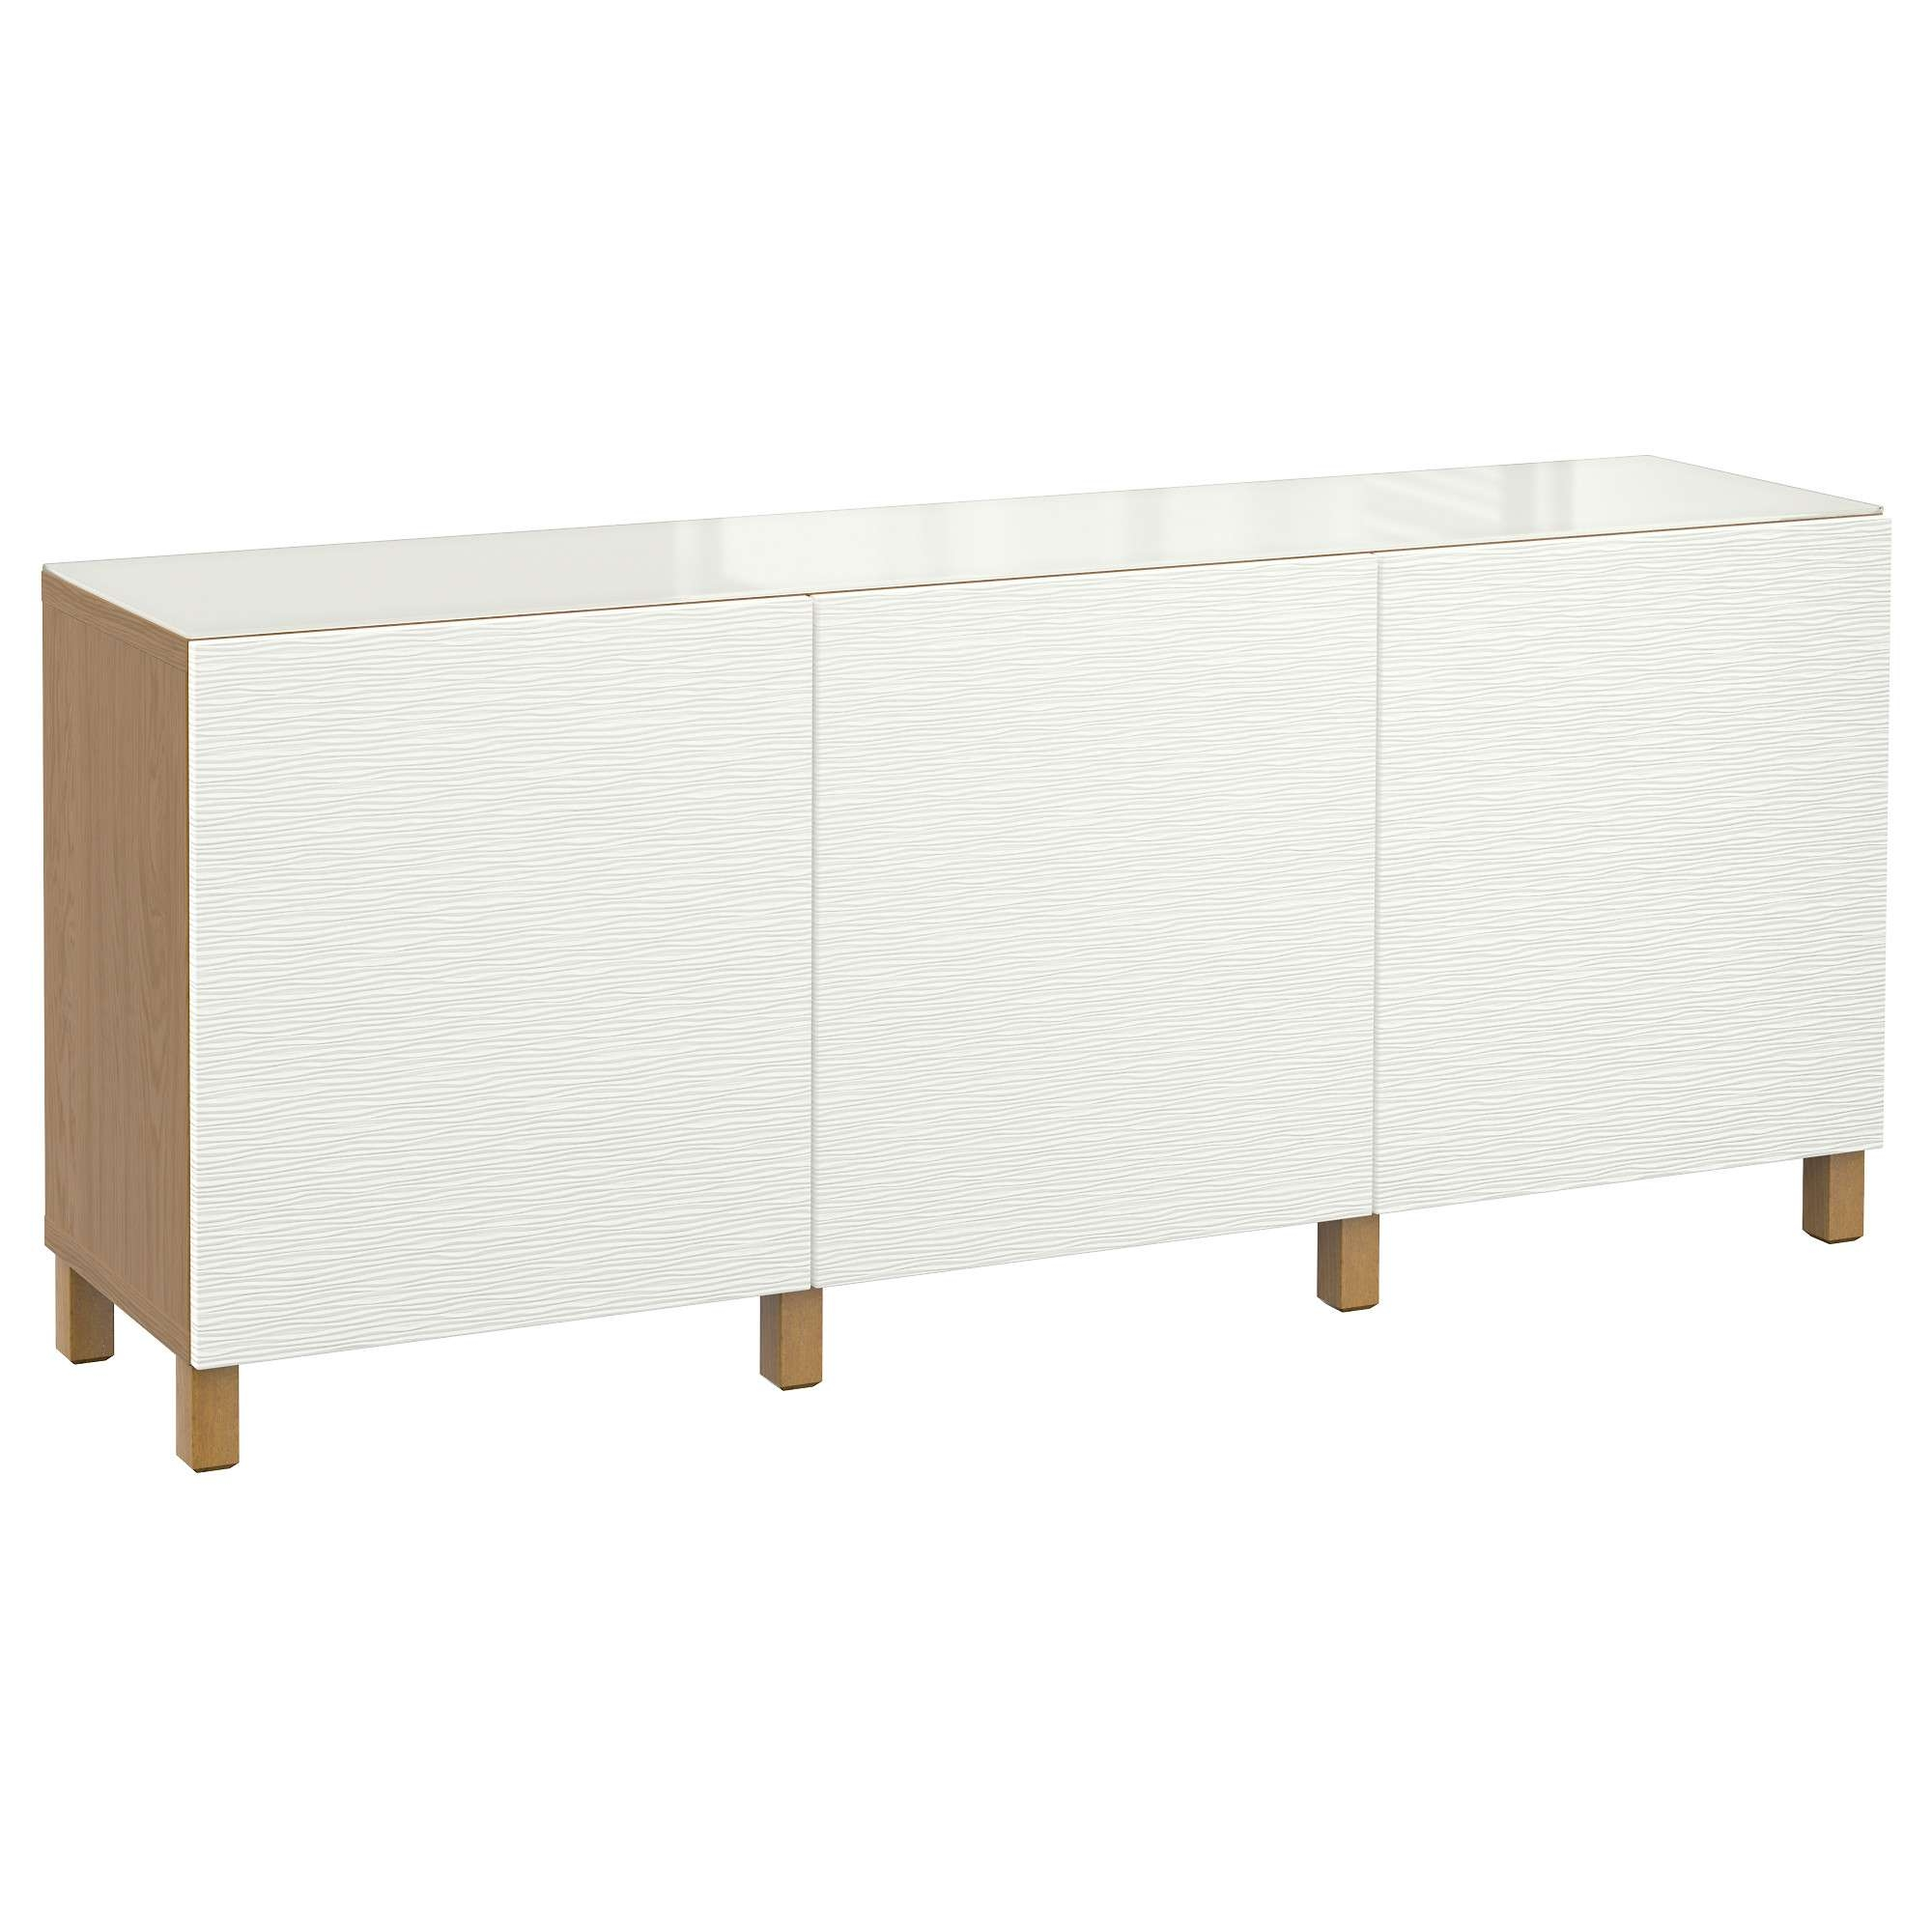 Bestå Storage Combination With Doors Oak Effect/laxviken White For White Gloss Ikea Sideboards (View 6 of 20)